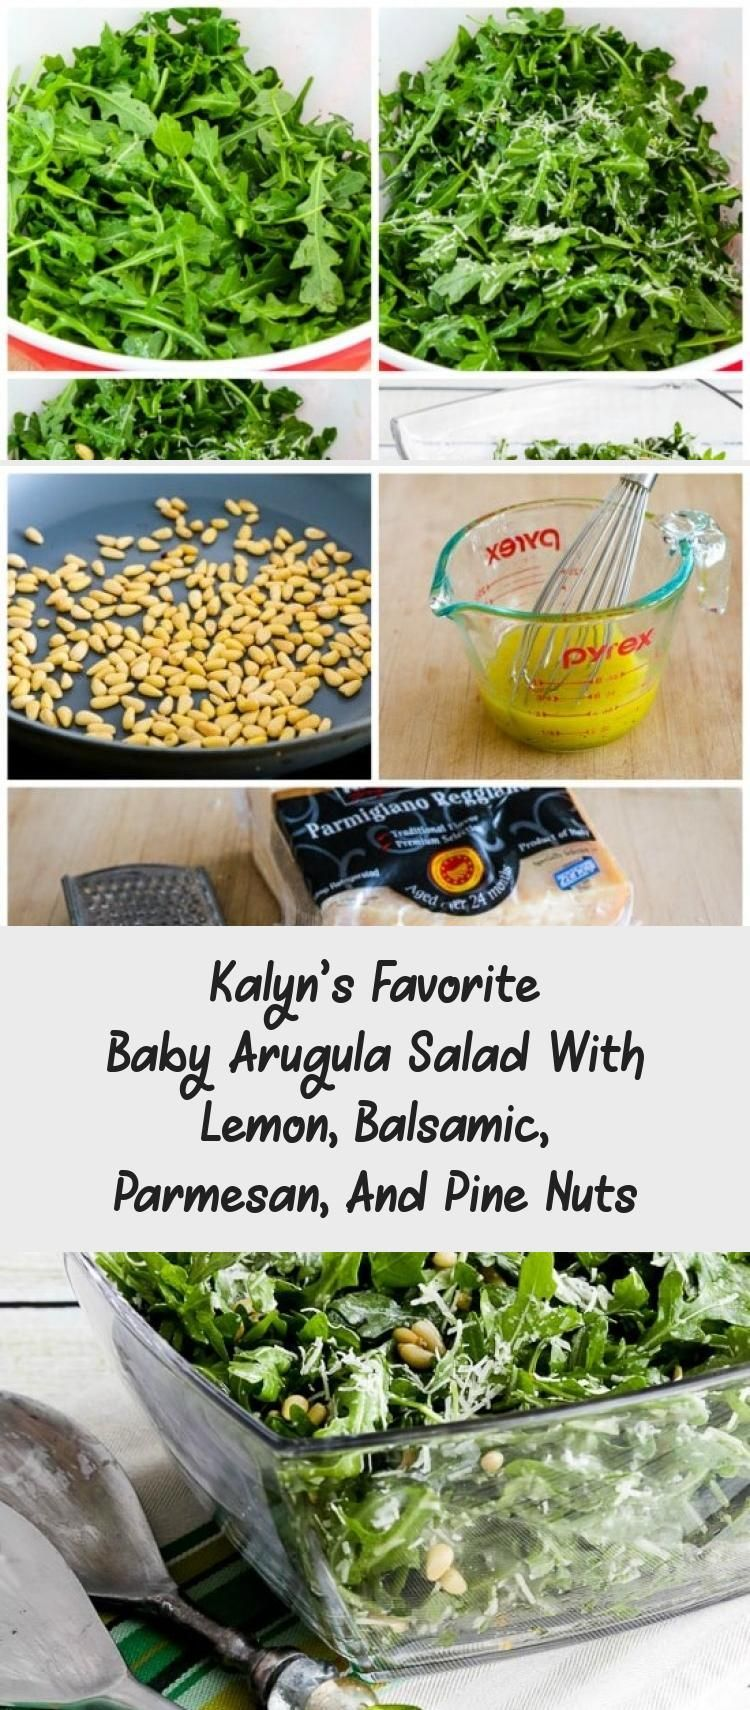 Kalyn's Favorite Baby Arugula Salad With Lemon, Balsamic, Parmesan, And Pine Nuts – Recipes For Dinner